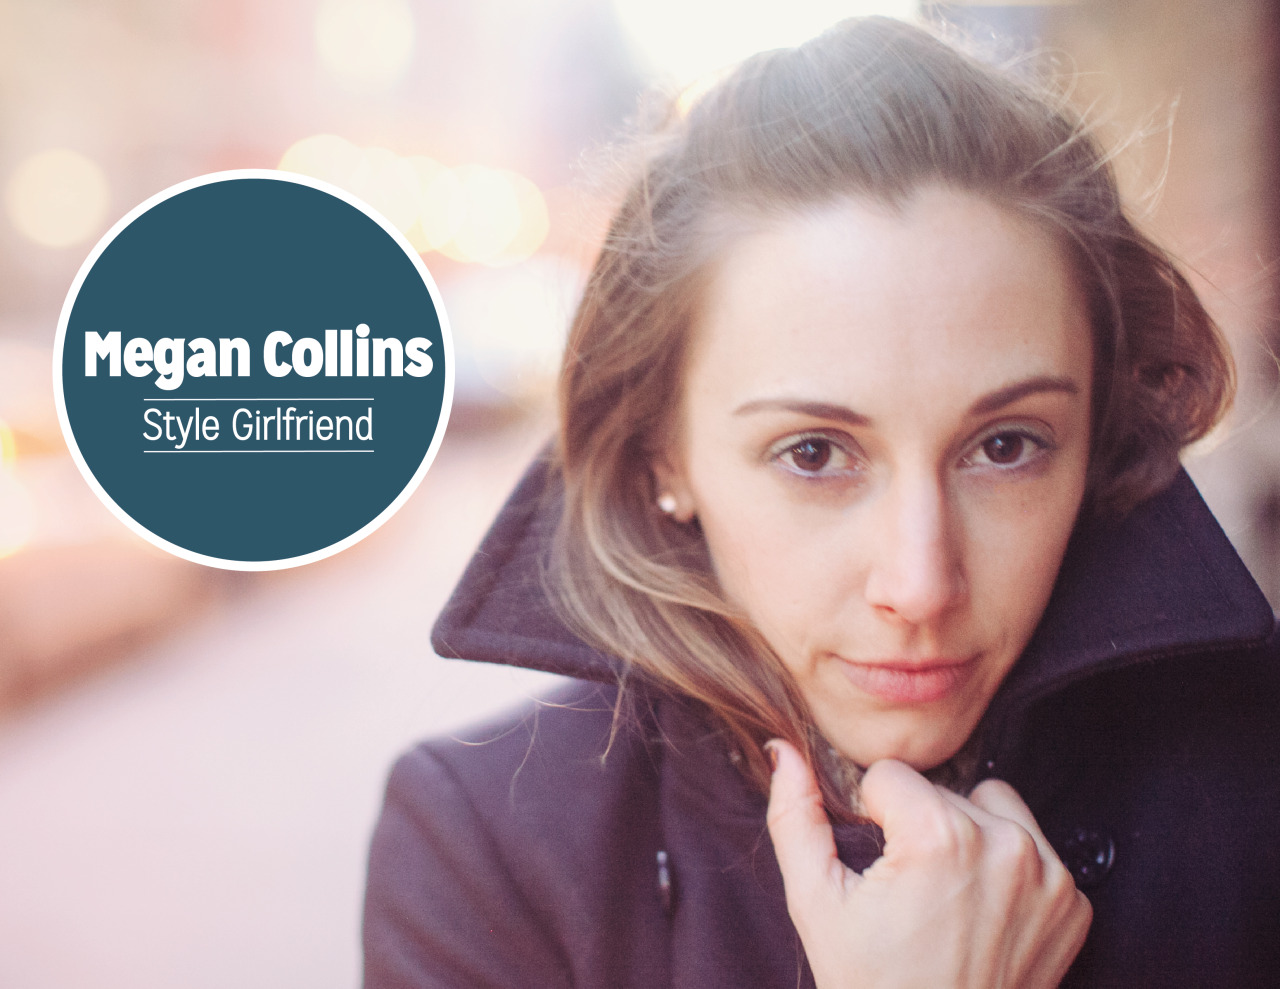 "A Collected Interview: Megan Collins, Creator of Style Girlfriend   What inspired you to become a blogger?  After college, I got into advertising and pretty quickly realized it wasn't what I wanted to do. I started a personal blog as a creative outlet while I was trying to figure out what I did actually want to do. Once I realized that writing was my true passion, I started taking on freelance assignments on the side. So blogging helped me figure that out AND helped me keep from going crazy while I was doing work that had become pretty soul killing for me.  What inspired you to make menswear your main focus?  Menswear happened entirely by accident. During the time I was building up my freelance portfolio, a friend of mine started up a men's clothing business and asked if I'd want to write a weekly column for his site. He just wanted content, and I wanted to write as much as I could. I told him I didn't really know anything about men's clothes, and he told me, ""That's cool; just write about what you like to see guys wearing."" That seemed simple enough, and as it turns out, I had lots of opinions about the clothes I liked on guys. Eventually, the column became popular enough that we both agreed that it didn't make sense for it to appear on his site anymore, so I spun it off into its own thing and gradually started adding more and more content.  Describe the feeling you get when men tell you how much you've help them dress and feel better.   Oh my gosh, it's the best! Seriously. The emails I get from readers telling me, ""All my co-workers said how great I've been looking lately,"" or, ""I asked this girl out on a date who, six months ago, I would have thought was out of my league, but now I've got all this confidence from dressing better,"" I mean, it's amazing. I feel really fortunate to be in a position where I can help guys help themselves. I always say that Style Girlfriend isn't about fashion, it's about STYLE - and style isn't just about clothes. It's about waking up every day and choosing to live with intention. That extends from the food you decide to put in your body, how you take care of it through exercise, the passion you put into your career, and, yes, the clothes you wear. Style Girlfriend is just about reminding guys it's worth it to stop and say, ""Do I want to wear the ratty old jeans or the khakis?"" From there, it becomes, ""Do I want to run two miles on the treadmill, or can I run four?"" and ""Should I order in or finally learn to cook something for myself?"" ""Do I want to wear these khakis rumpled, or should I iron them first?"" Women want to see a man continuing to take that next step to better himself.  What 5 items should every man have in his closet?  Hmm, can I have 7? It's my lucky number… 1. a navy or grey suit 2. dark rinse, straight leg jeans 3. a white oxford shirt 4. the perfect crewneck white tee 5. white or light blue dress shirt with a spread collar 6. v-neck sweater in a neutral color 7. a signature jacket (harrington, mac, leather, peacoat, field jacket…) (Shoes, of course, deserve their own list)  How has NYC shaped the way you look at the world?  It's made me more willing to push boundaries - or even better, refuse to acknowledge they exist. I was always the craziest dresser among my friends in high school, but when I came out to New York, I realized how tame my style actually was. It really made me realize how fluid the parameters are. What's crazy in Wisconsin isn't crazy here in New York. And similarly, the opportunities available to me there aren't necessarily the same ones here. I love Wisconsin and am always happy to get back (as I type this, I'm on a plane on my way there for a week-long visit!), but I think it's good to get away from where you're from. It doesn't have to be New York, anywhere you go that's not familiar will open your eyes to the world in a really new and positive way.  And that's why I am always encouraging of guys who say, ""Well no one else dresses like this where I live."" I say, who cares? Dress better than everyone else and let them be jealous. If they try to make fun of you, know it's only because they wish they could look as good as you. And if you move to a city that's more trendy (or at least, encouraging of fashion), you won't have to play catch-up with your wardrobe.  What tips do you have for men looking to refine their style?   Your tailor is your best friend. You don't have to spend a ton of money on the best designer clothes. You can buy a dress shirt from H&M for $30, take it to a tailor and have it taken in a bit or whatever. For ten more bucks, it will look better on you than a $300 shirt that fits improperly.  How was it working the Dan (The Style Blogger) and his team?  Great! Dan and I have very similar viewpoints about style, namely that it's not an exclusive club. Sometimes menswear sites can be intimidating, from a cost standpoint, and just from a trendiness standpoint. He and I both believe that it's about looking ""good"" not necessarily looking ""cool"" and it's certainly not about wearing the ""right"" labels. It's about wearing whatever looks and feels right for you.  Where do you see yourself ten years from now? I'm doing more video content on Style Girlfriend this year, and I really enjoy it, so I'm hoping to do more. As much as I love writing, it's fun to be able to reach a larger audience, whether that's through YouTube or on television or what have you.  Do you have any future projects or collaborations you're excited about? I'm excited about everything right now! There's a lot coming up with Style Girlfriend, so definitely stay tuned.  Who are some of your favorite designers?  For guys - and at the price points I personally can afford - I like J.Crew, AG Jeans, Rag & Bone, Saturdays NYC, Uniqlo, Shades of Grey, Randolph Engineering… Recently, I've become totally obsessed with this cool soccer brand I just discovered called Bumpy Pitch; they have these sweatshirts that look really cool but are so, sooo comfortable. I have one in a smaller size and wear it all the time.  What's a typical day like for Megan?   There isn't one! This month, I've been in five different cities - and counting. I have to remember to give myself breaks, because sometimes it's easy to think that because I shut my computer down at three to go cover an event that starts at 5 or 6, I'm not getting in enough ""work"" time. But all of that stuff is just as much work as when I'm slogging away with next week's posts.  Who's your favorite best-dressed male celebrity?   I think Aziz Ansari always looks great. He's a smaller guy, and he always wears clothes that are perfectly tailored for him. And he does his stand-up in suits, which I love of course.  Who's your icon?  What a great question, and I wish I had a quick answer! I really respect anyone who has made their own way. Laurel Touby, who founded the website Mediabistro, is someone I really look up to as a female entrepreneur in the online space. Even though she's younger than me, Leandra Medine from Man Repeller is a great example of someone with a really creative idea and a strong point of view who had a business plan and came out of the gate so strong. My friend Rembert Browne, who writes for Grantland, inspires me to constantly be checking in with myself and making sure I'm writing in my voice. The best compliment I receive from readers is, when they meet me, and tell me, ""You talk just like you write!"" I want my readers to feel like we're having a conversation, so that's always gratifying when it seems to be working.  What keeps you inspired?     Getting away from in front of the computer! I get my best inspiration for stories just from living life. A friend will tell me about a disastrous first date where the guy showed up in a stained t-shirt and zero confidence, or I'll see a guy on the street wearing a shirt and tie in an interesting color combination that I hadn't thought of before. I also get a lot of inspiration for stories from women's magazines and sites. Women's fashion sites tend to be more interesting to me, because they incorporate more brands at a price point I can relate to than men's sites and magazines. Sometimes it seems like they're all pushing Aldens and Tom Ford suits - stuff in the $three-zero's range. That's great, but I can't afford stuff like that (not yet, anyway) so I don't want to assume my reader can. I love mixing a piece from Target with a piece from Band of Outsiders with shoes from Florsheim. It's all about incorporating lots of ideas and inspirations.  Website 